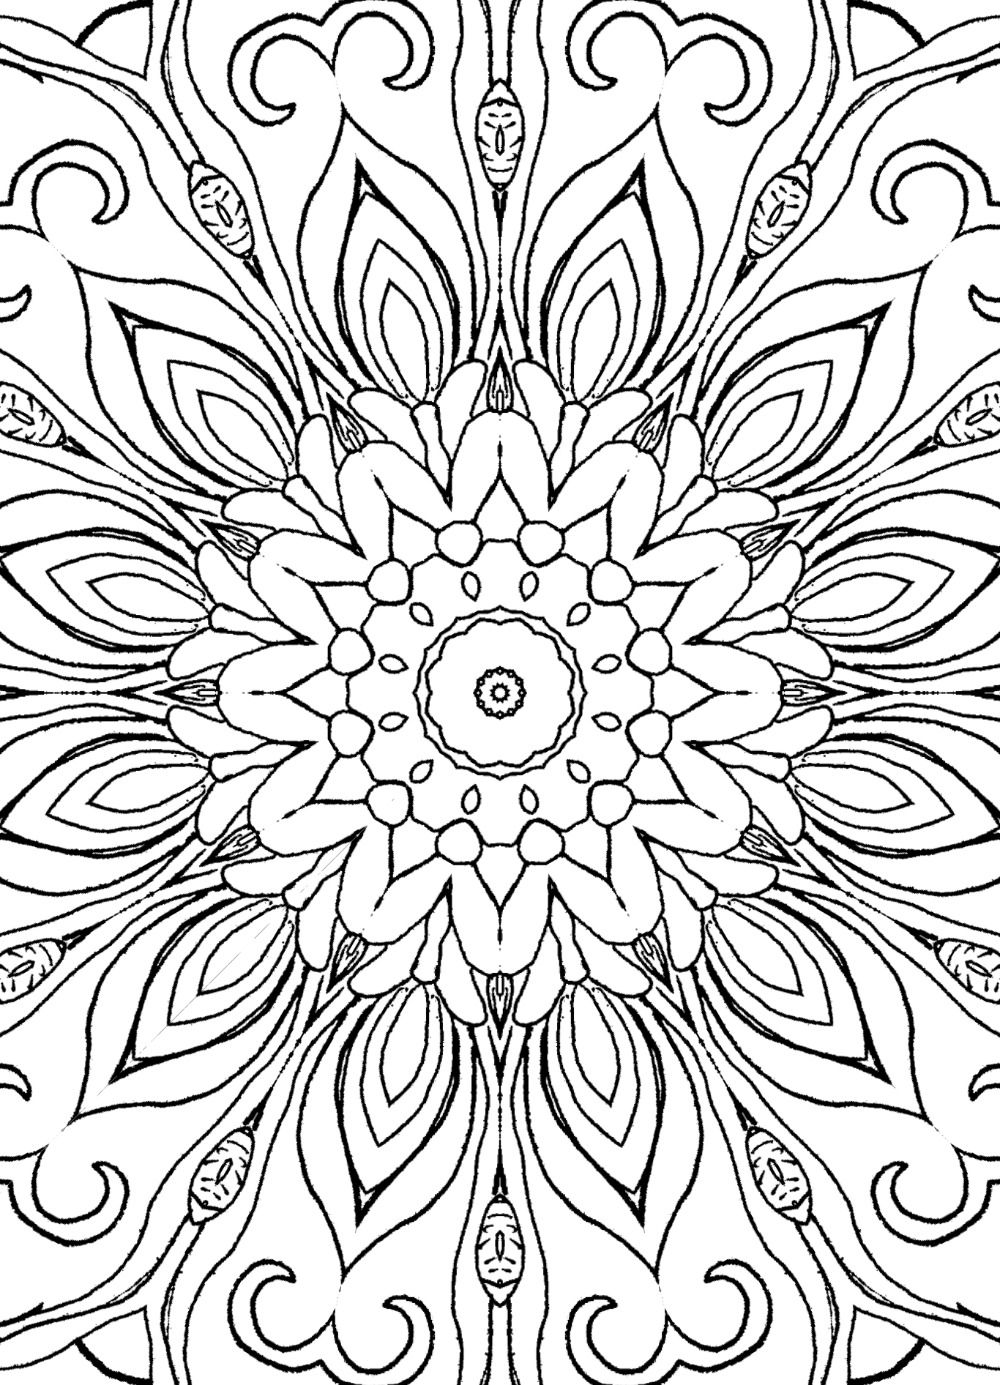 Onselz kristy pinterest mandalas adult coloring and coloring